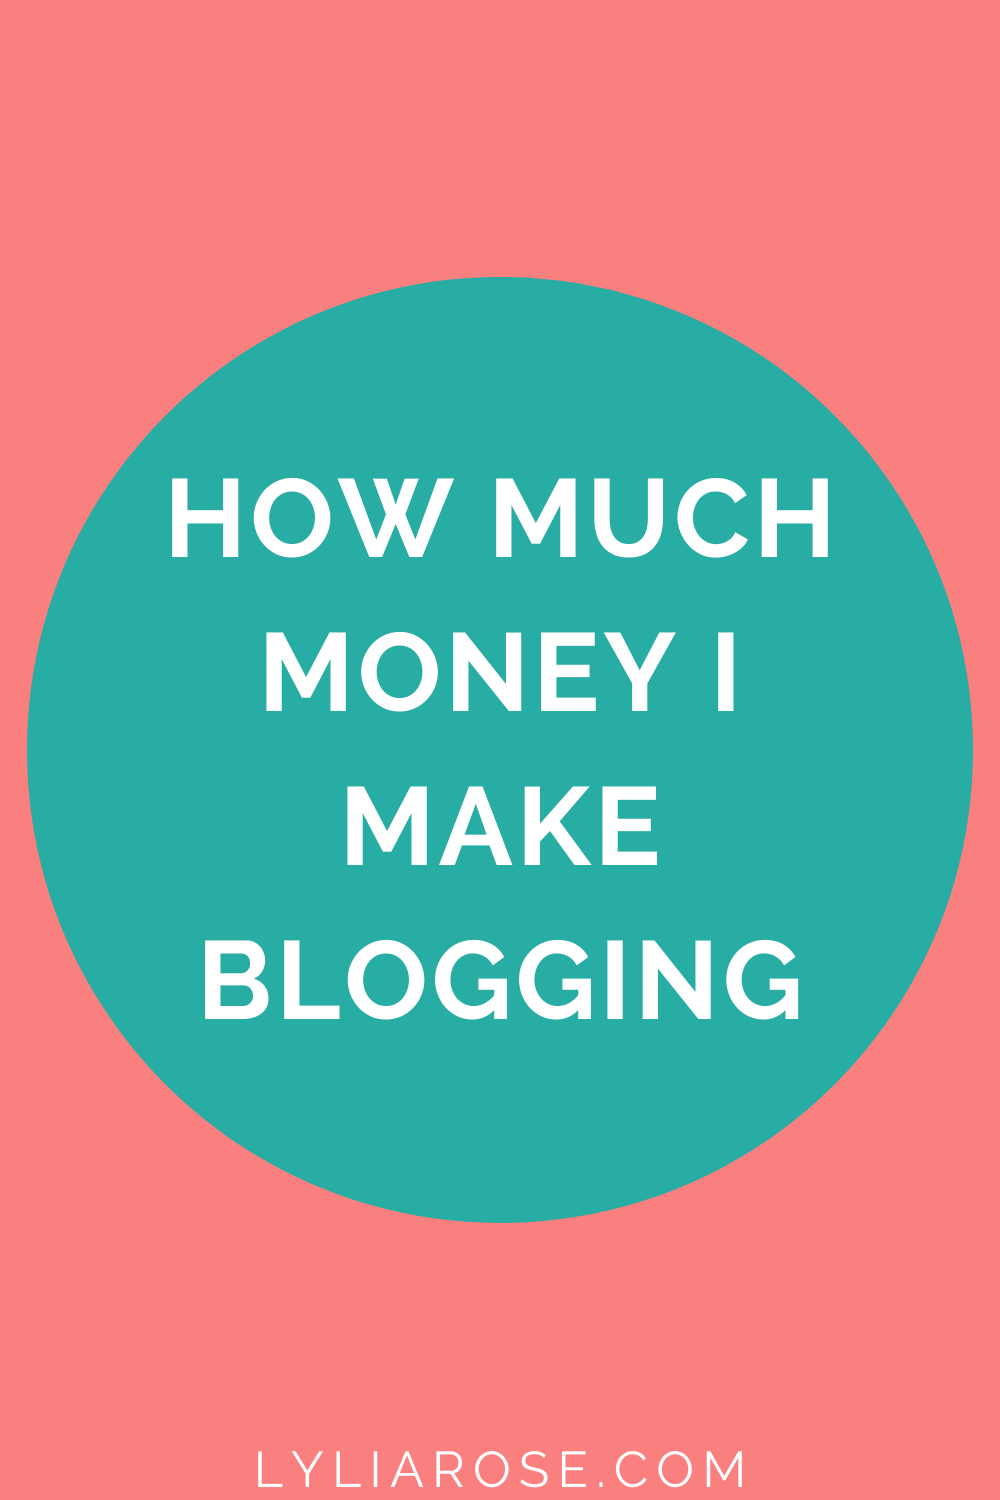 how much money bloggers make in uk